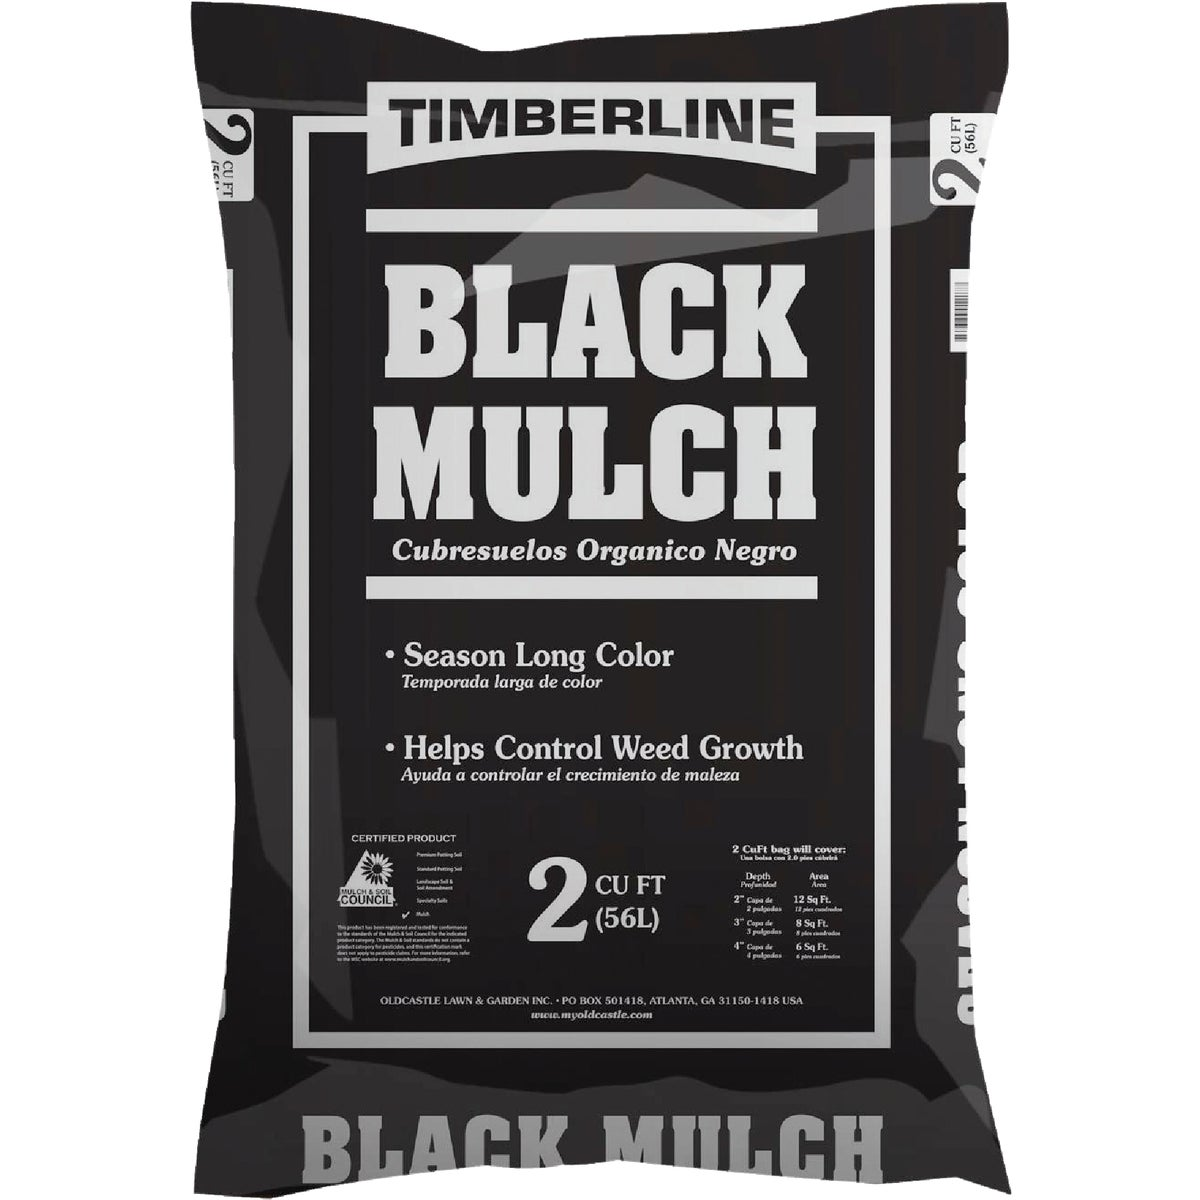 2CF BLACK SHREDDED MULCH